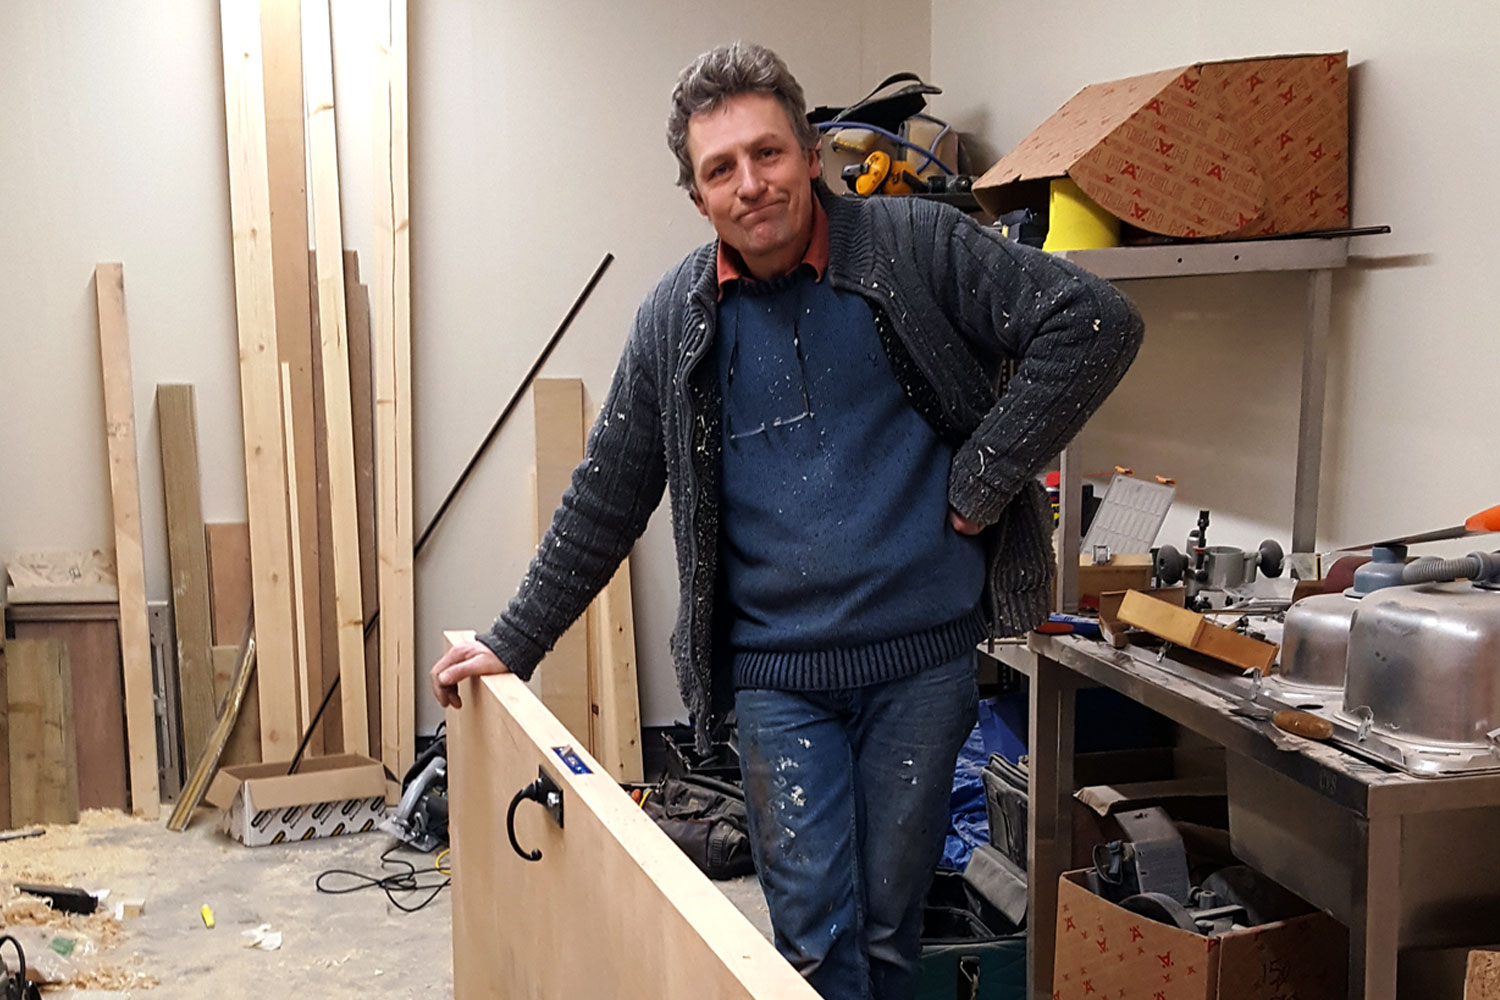 This is Quentin. Master cabinet maker, expert joiner, linchpin of the Cooper King woodworking department, and most important of all, Chris's father.